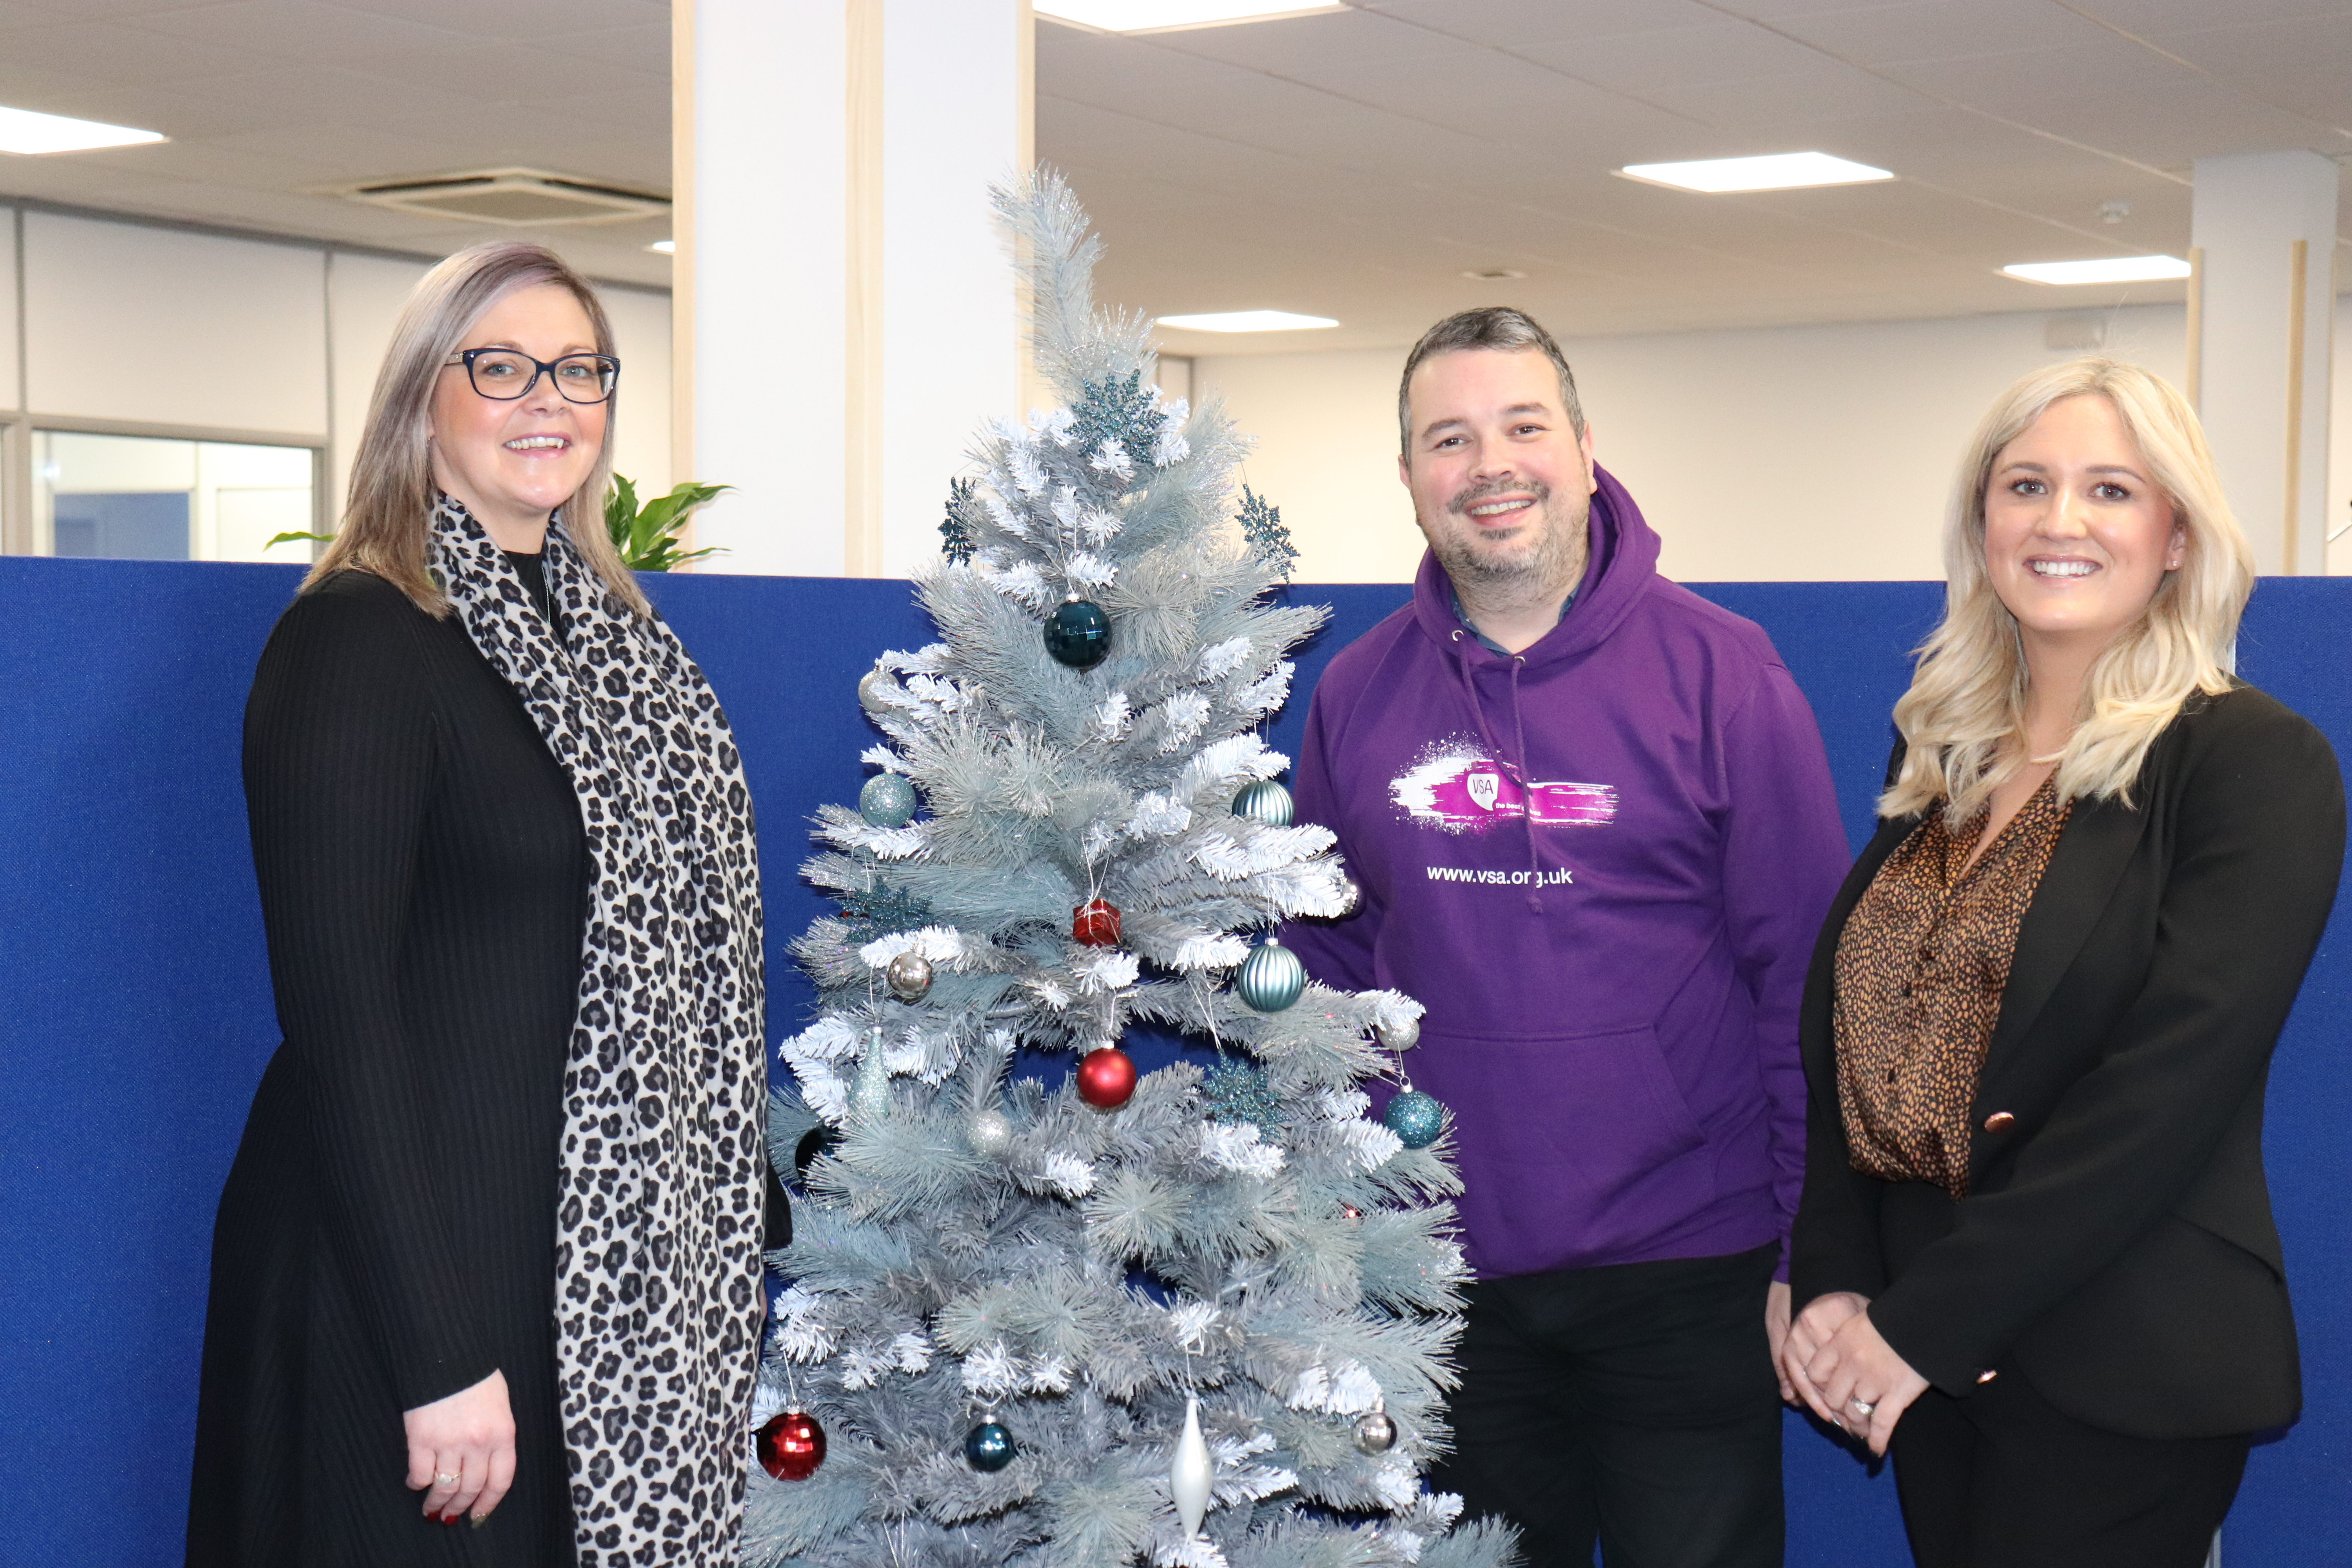 Pamela Horne, Chair of Sparrows Social Committee, Antony Ritchie, corporate fundraiser at VSA and Laura Lee, Sparrows HR Director